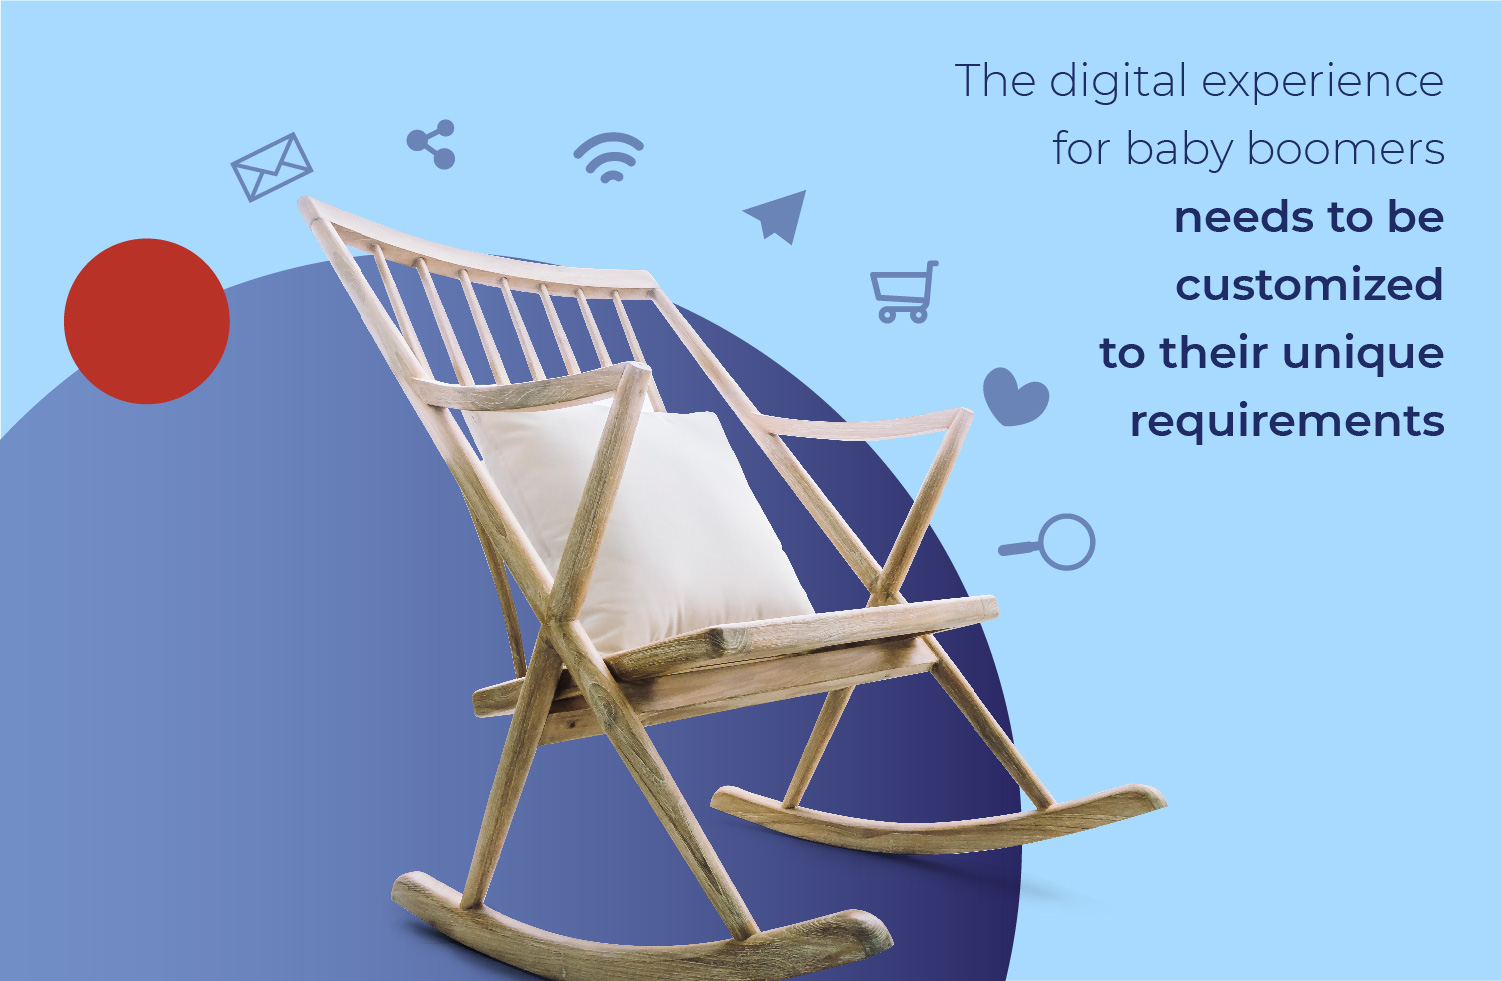 Enhancing the Digital Experience for Baby Boomers